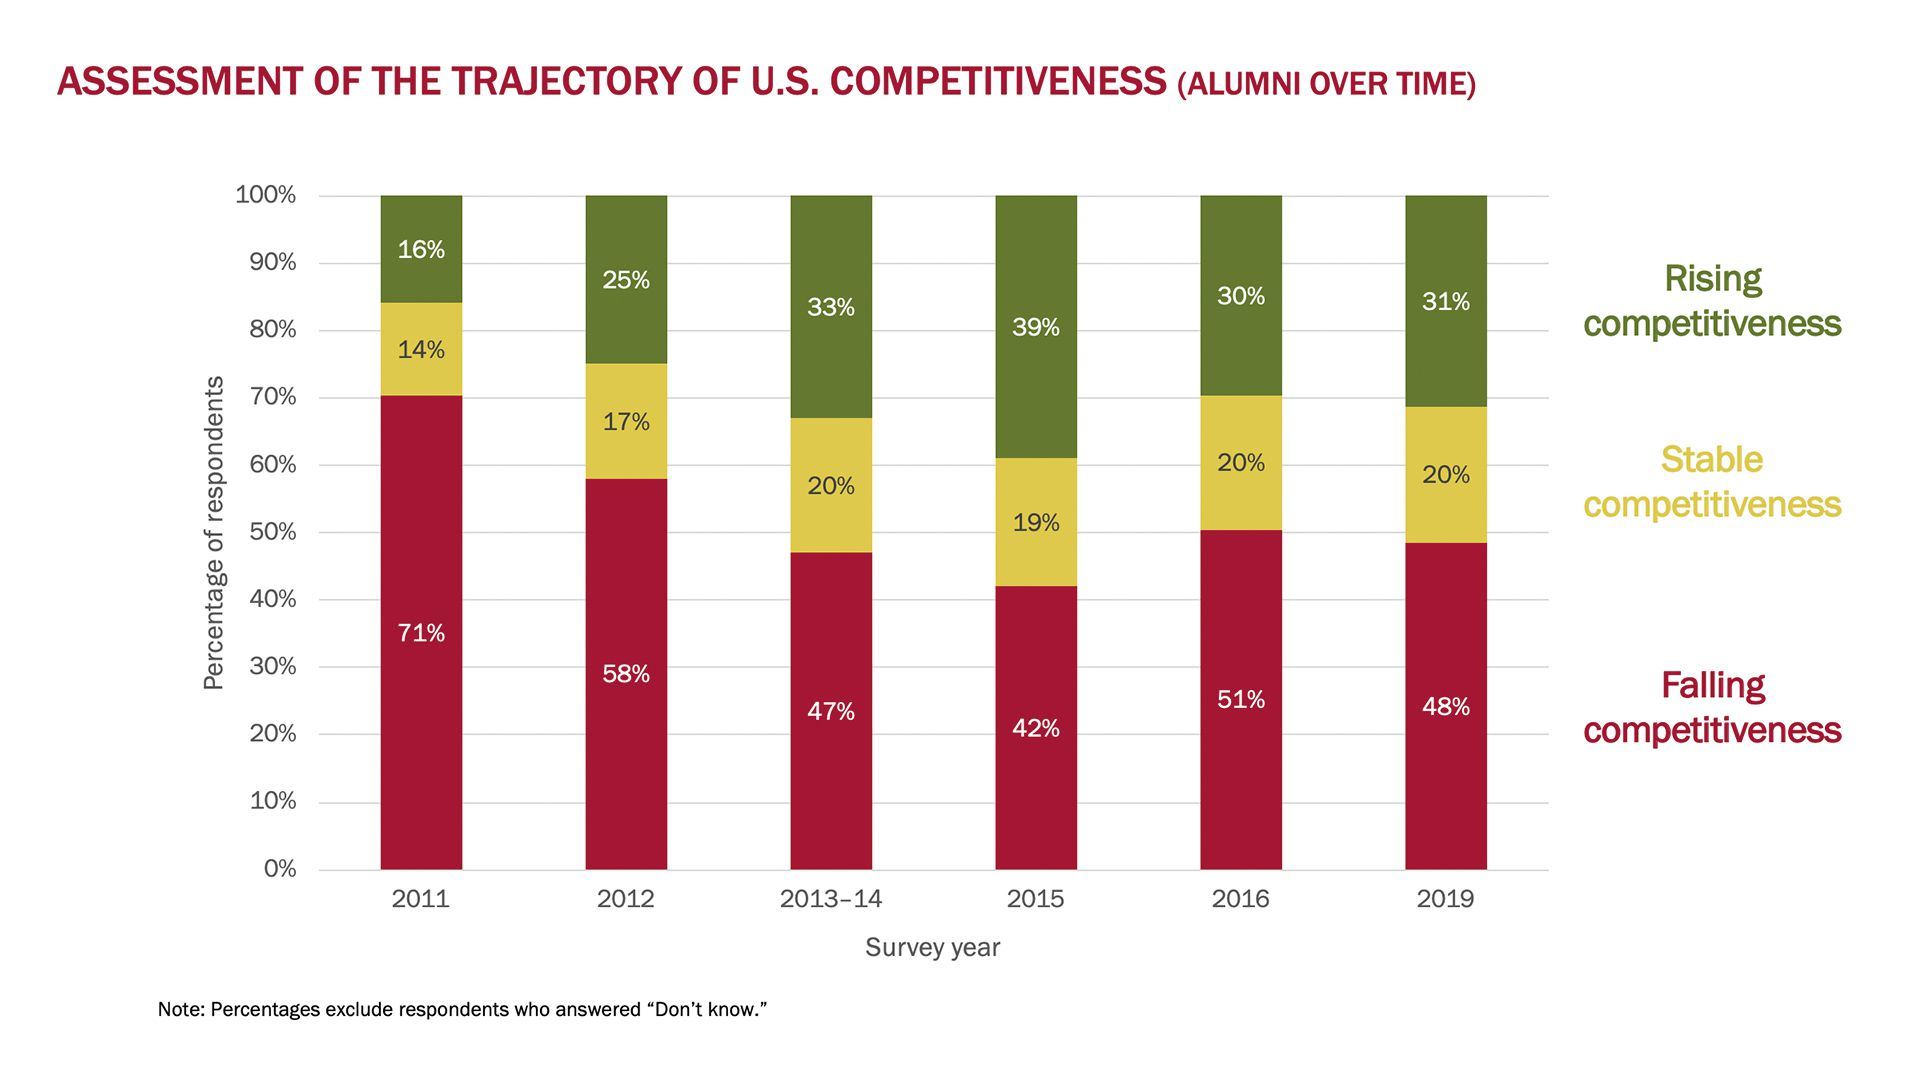 Survey results for U.S. competitiveness